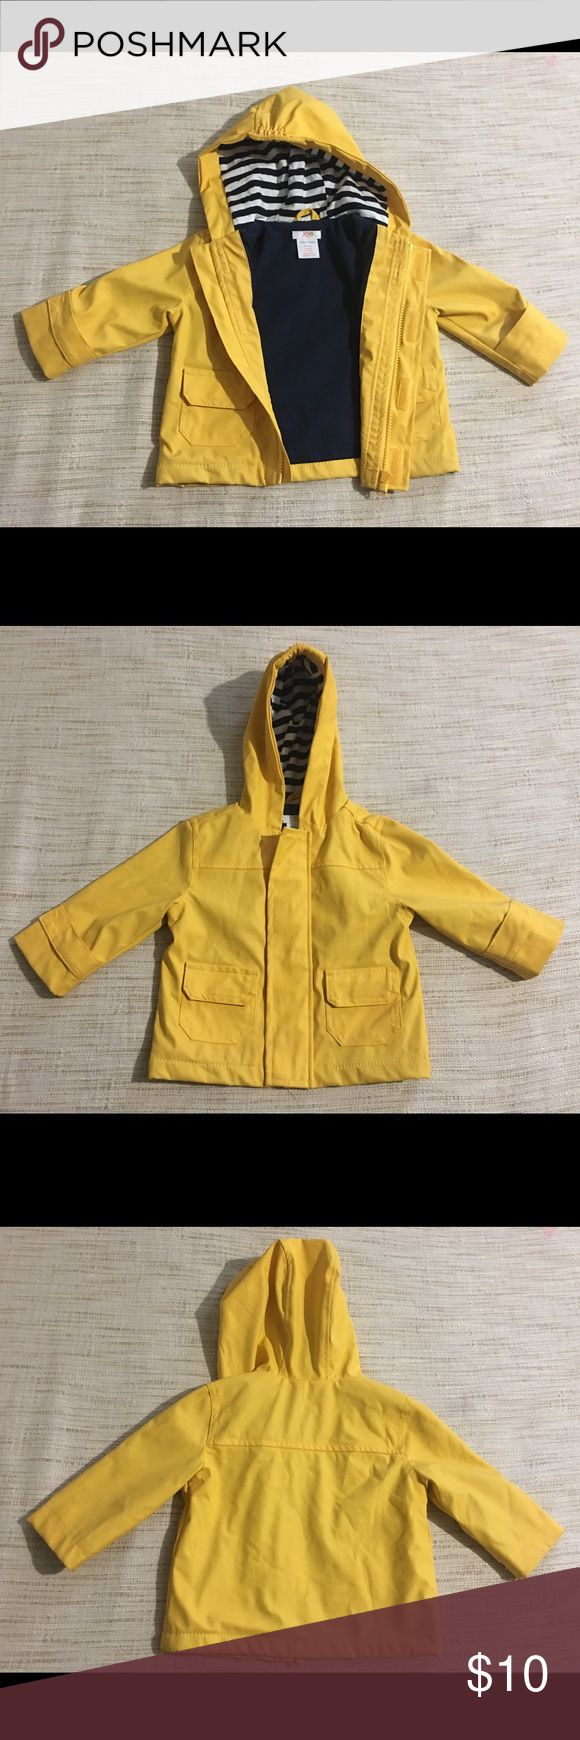 Joe fresh rain jacket Joe Fresh bright yellow rain jacket only worn once size 6-12 months Joe Fresh Jackets & Coats Raincoats